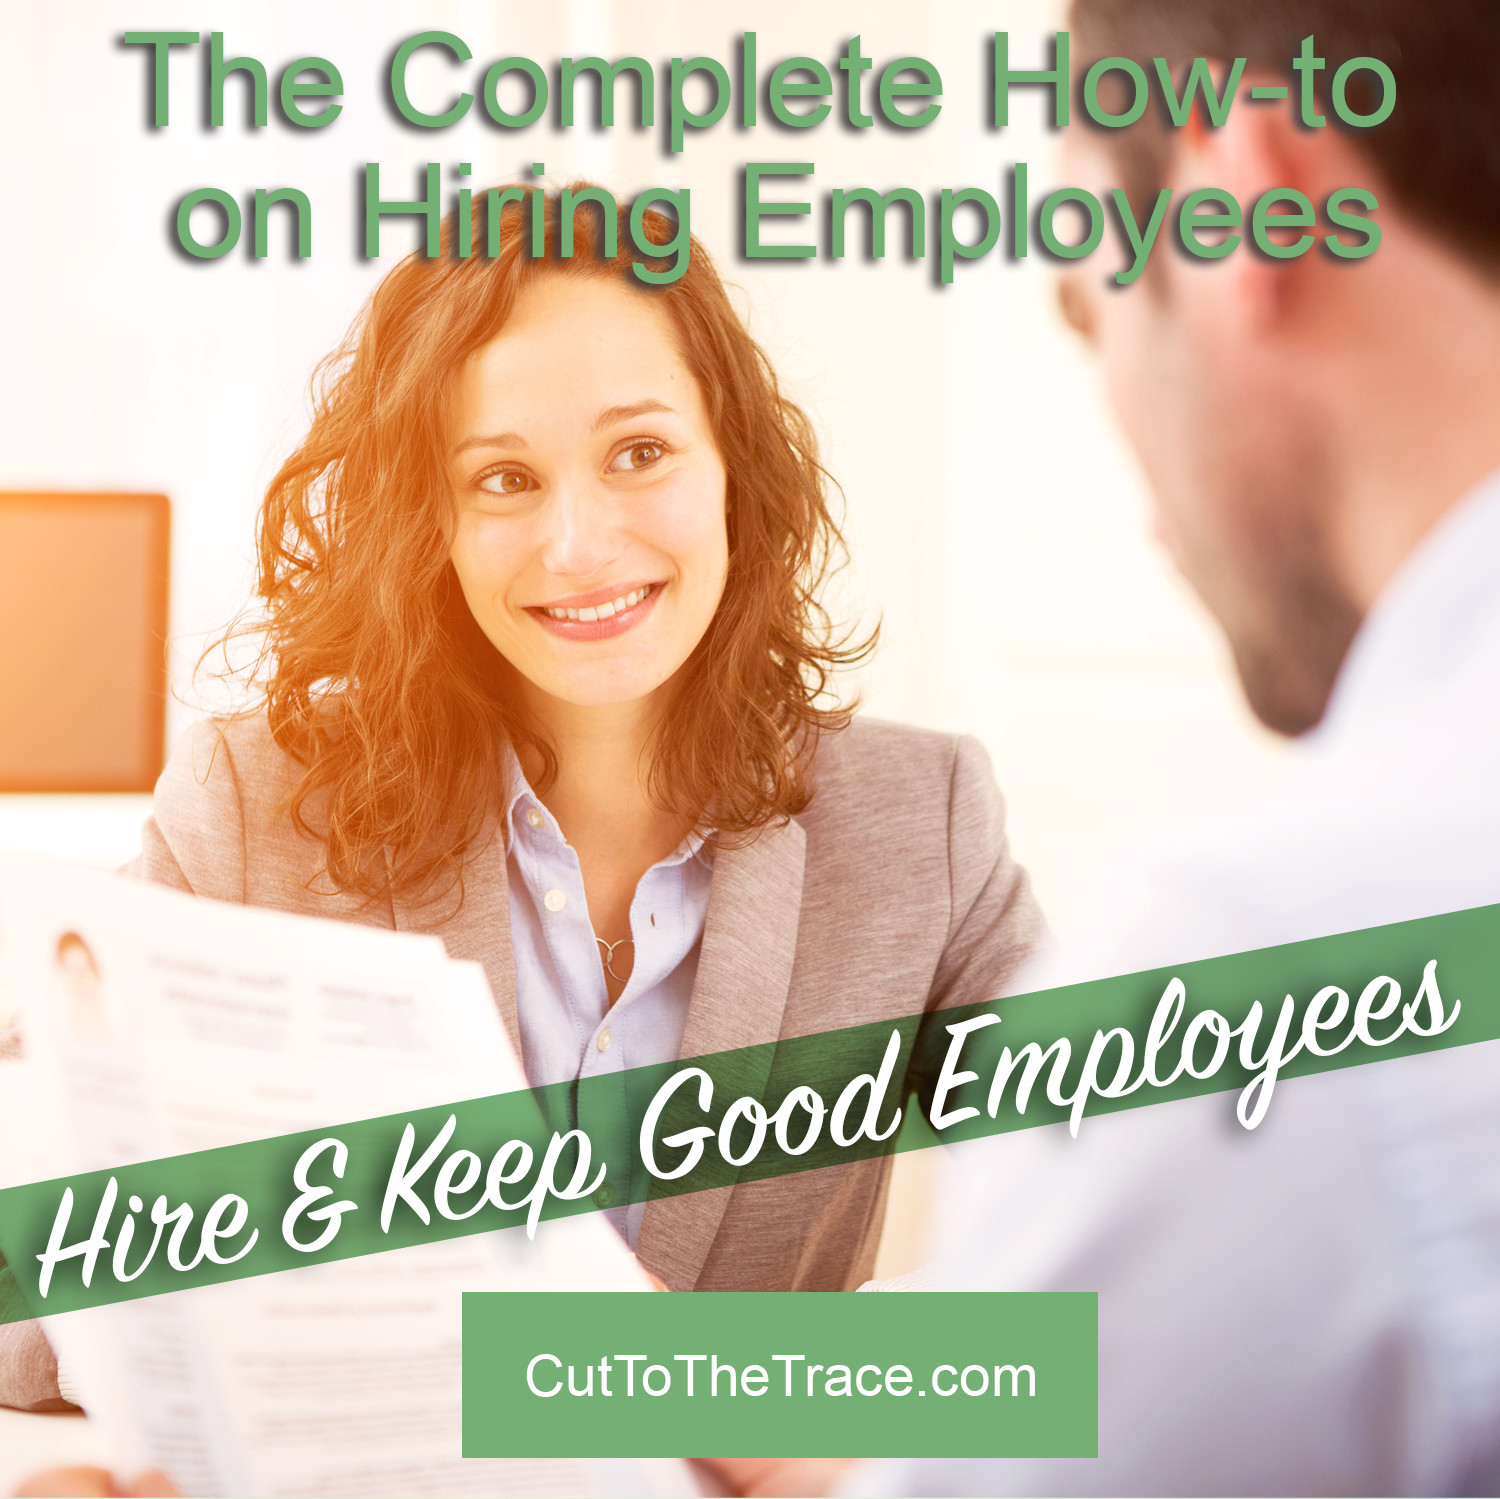 The Complete How-to on hiring and keeping good employees.